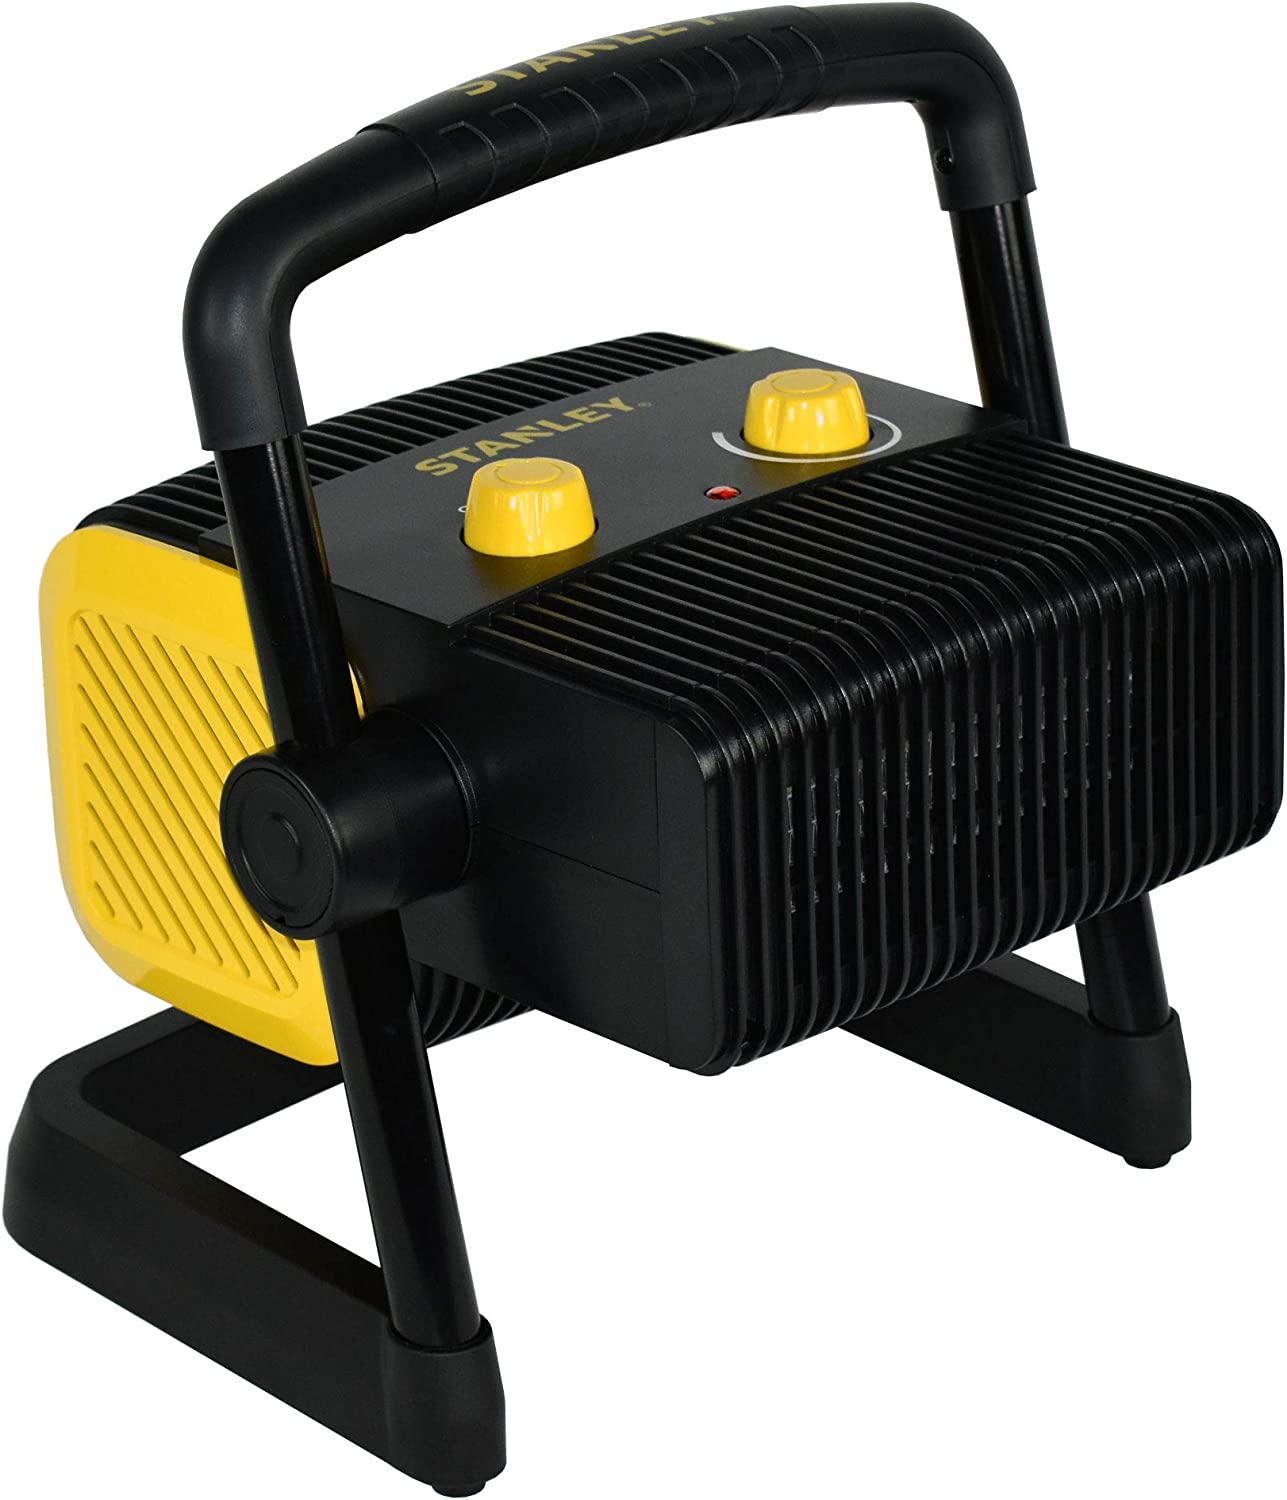 STANLEY ST-300A-120 Electric Heater, Black, Yellow